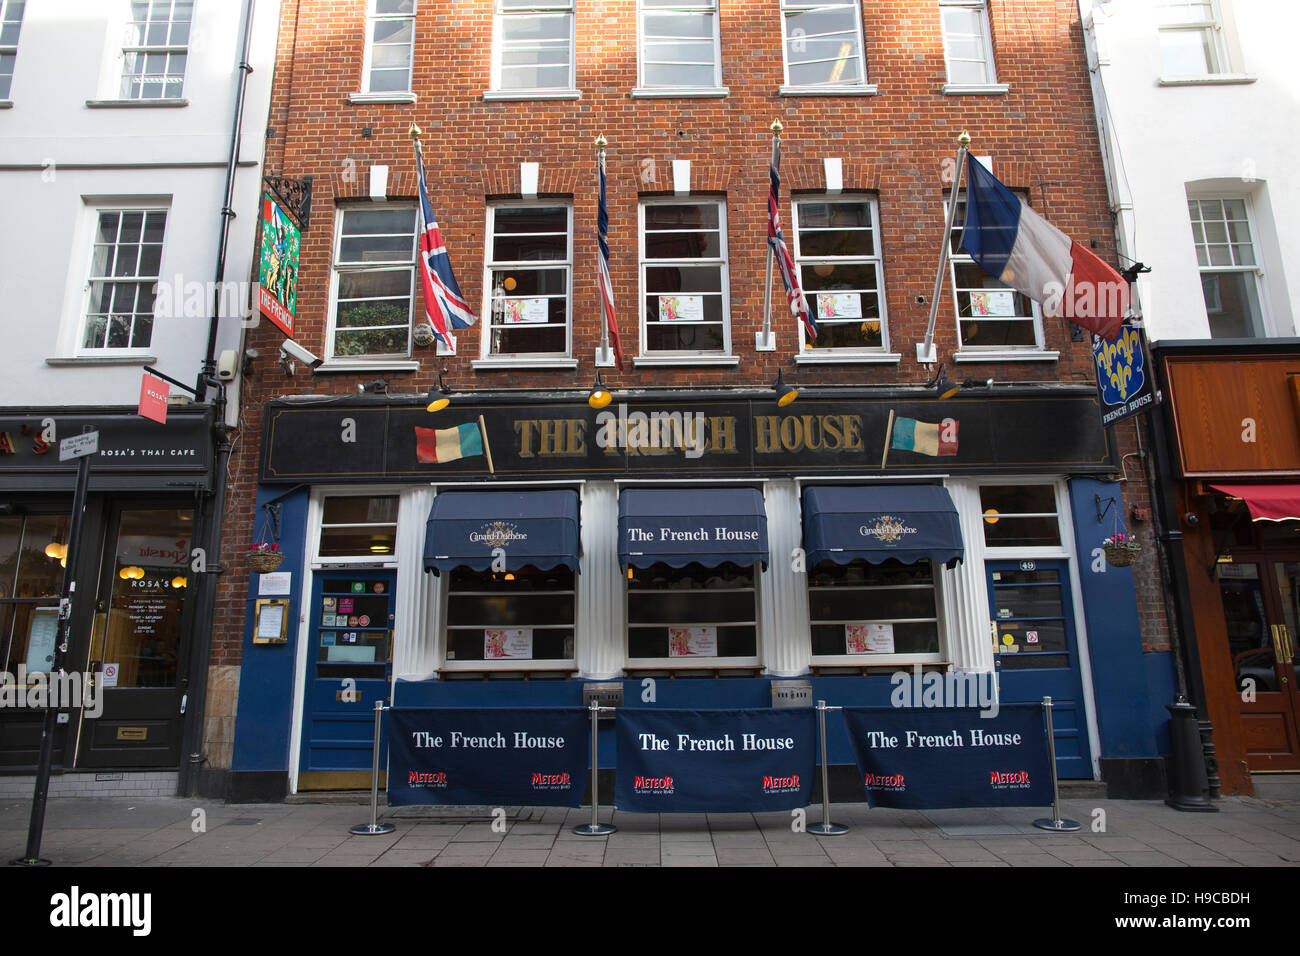 The French House, renowned pub in the heart of Soho, where actors, artists and writers frequent, Dean Street, London, - Stock Image